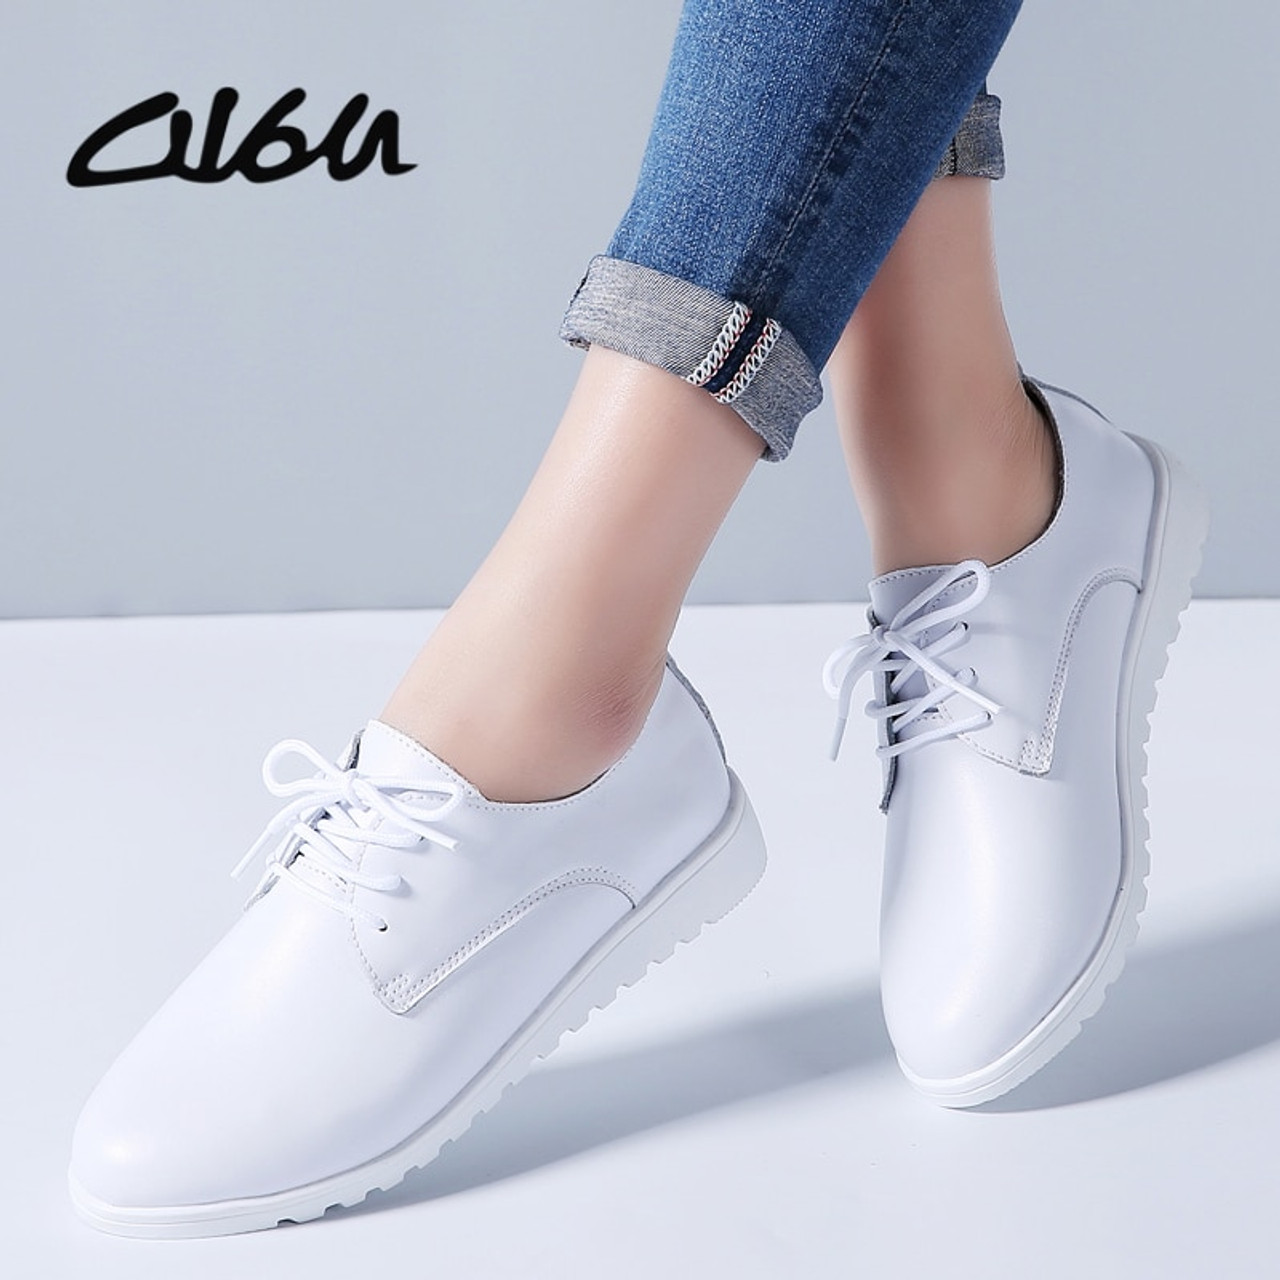 882804e6b4f O16U 2018 Spring Women Oxfords Flats Shoes Genuine Leather Pointed Toe  Ladies moccasins lace up loafers white shoes Sneakers